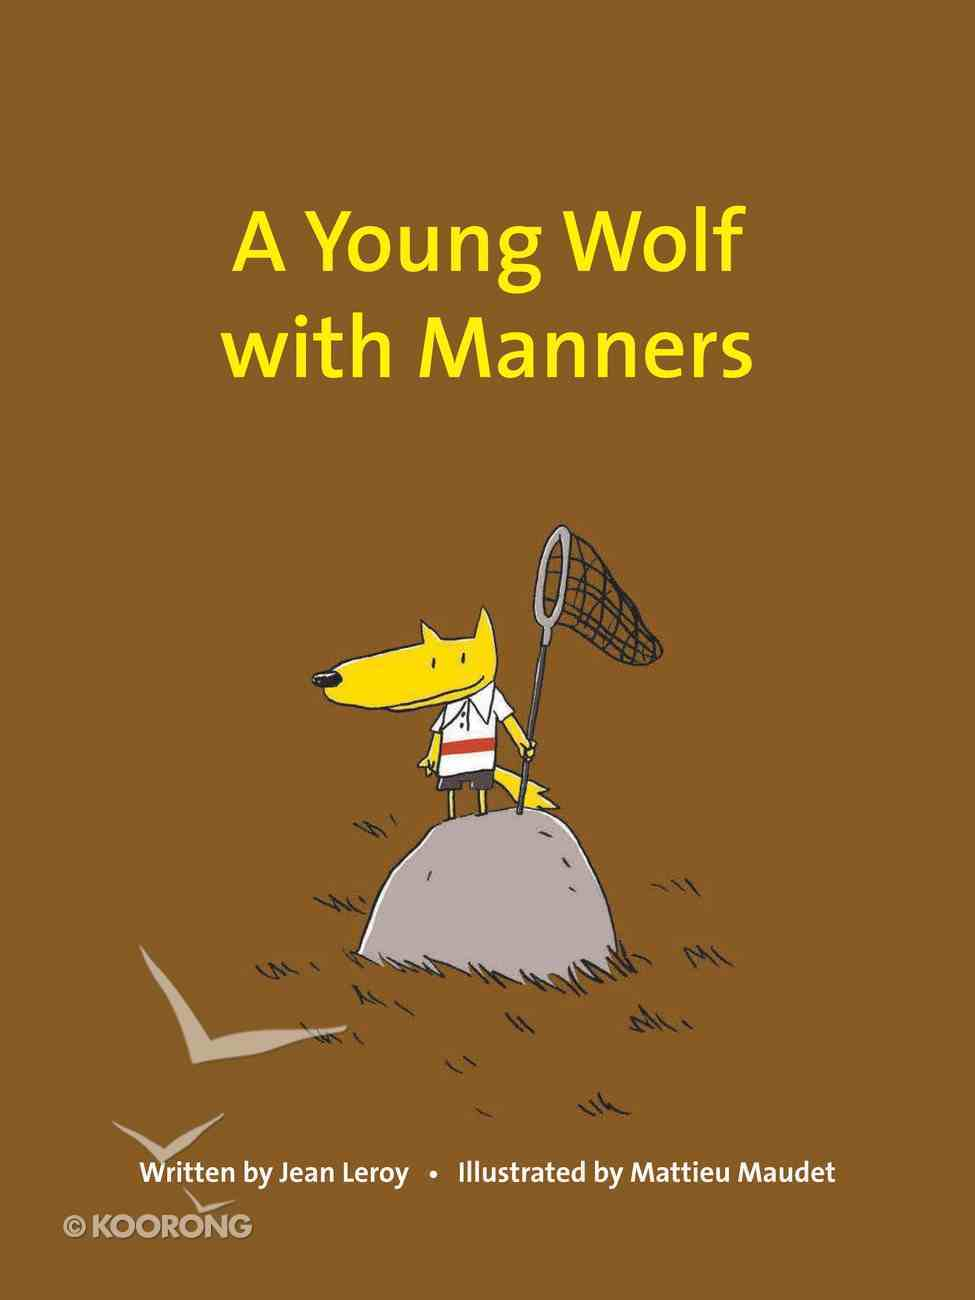 A Well-Mannered Young Wolf Hardback